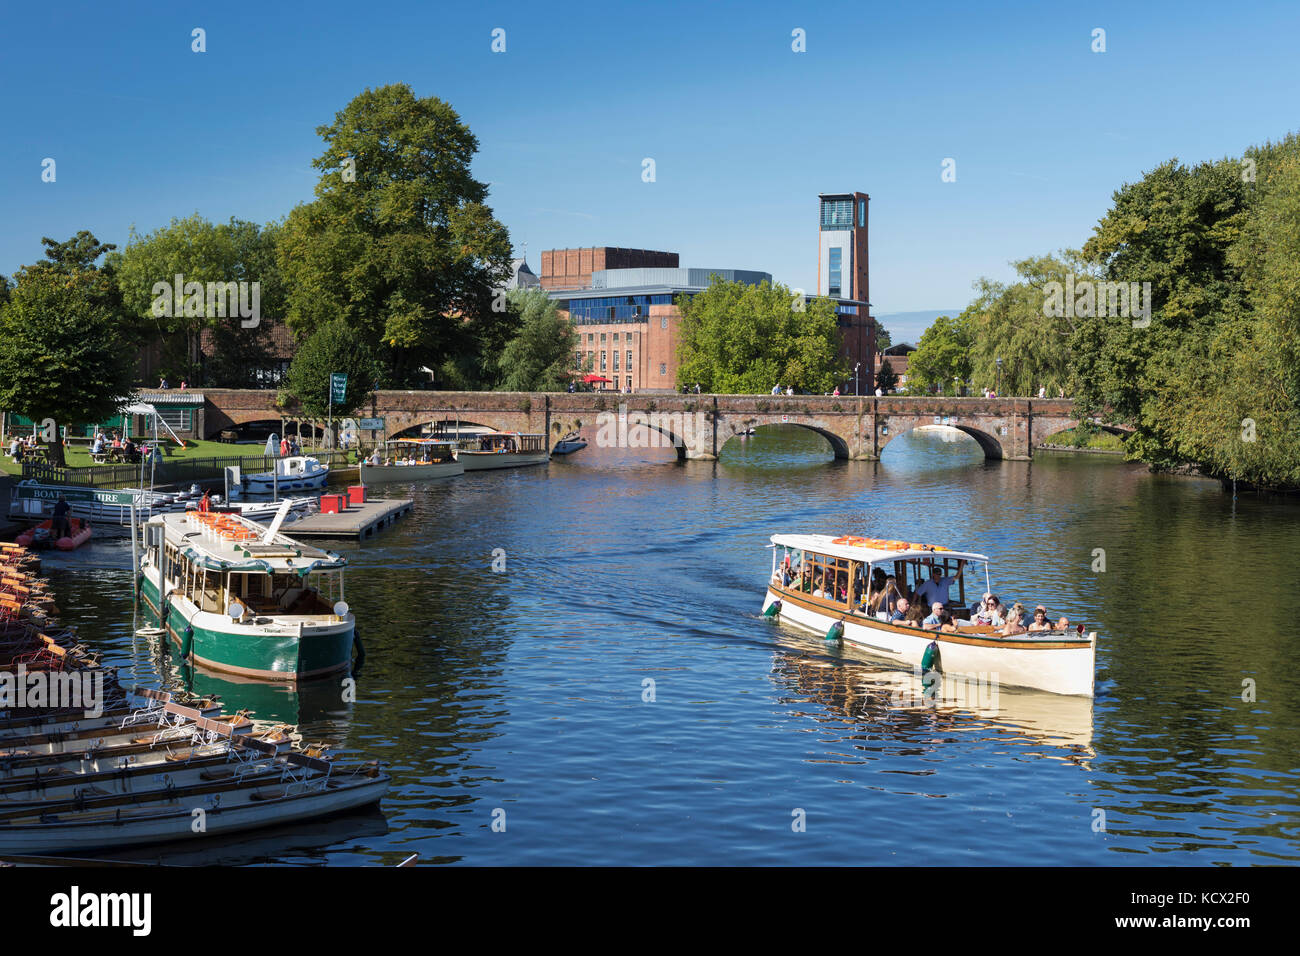 Tour boat on the River Avon with the Royal Shakespeare Theatre, Stratford-upon-Avon, Warwickshire, England, United - Stock Image